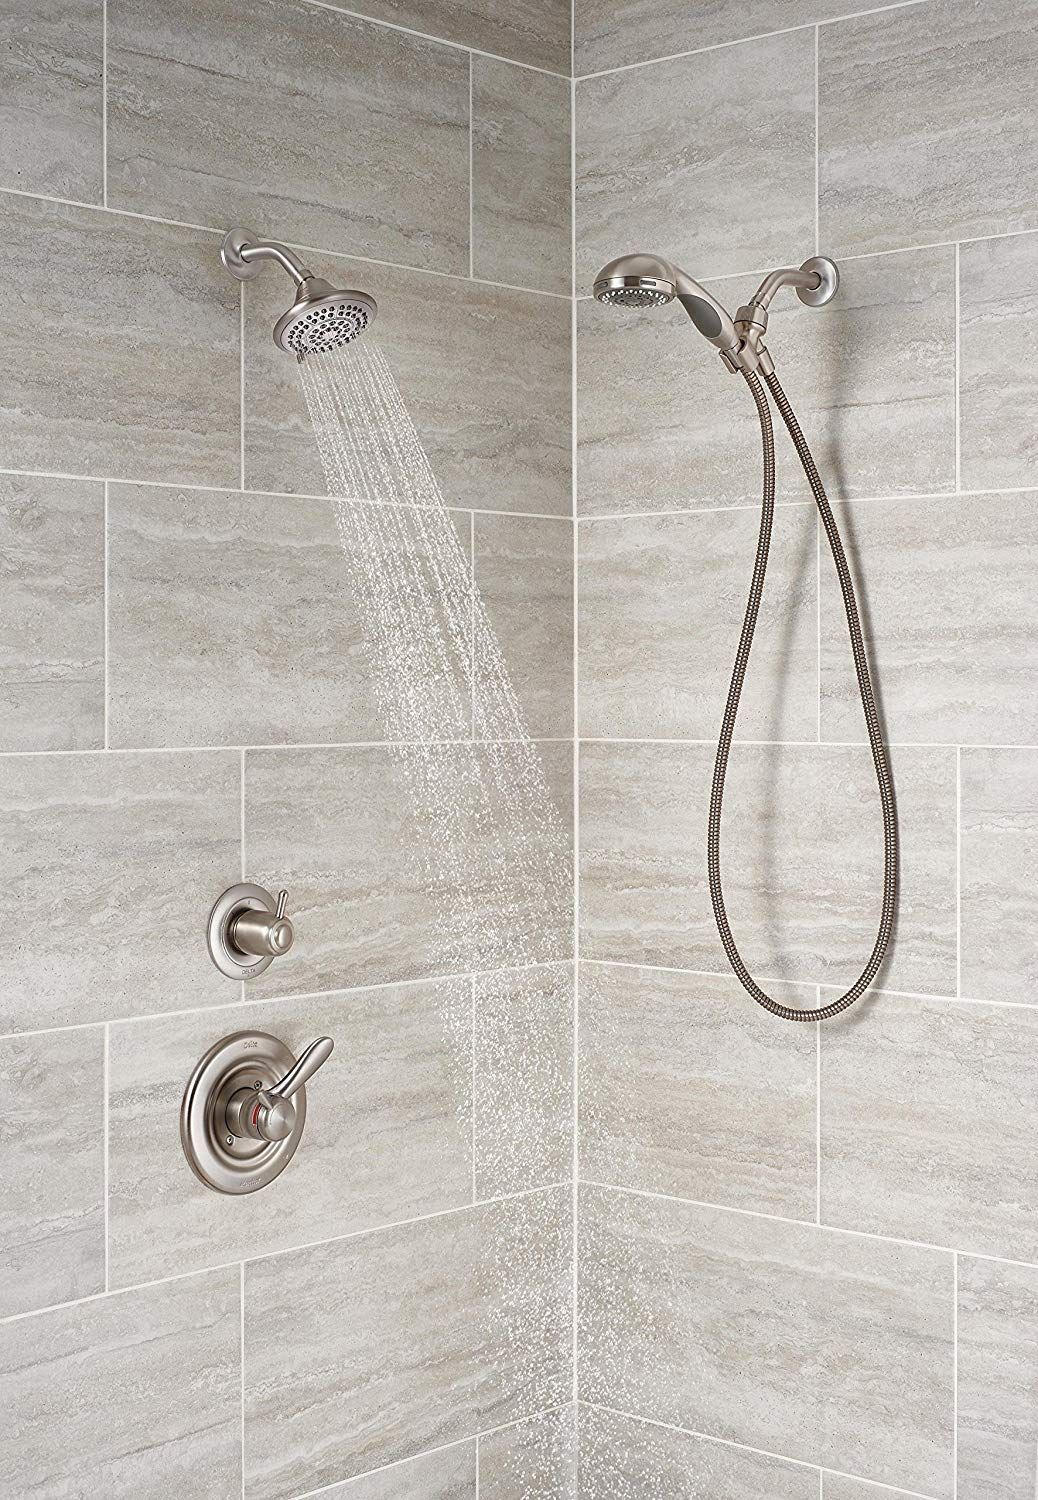 Simply Set The Water At Your Preferred Temperature And Turn The Shower On Or Off With The Volume Cont Shower Faucet White Porcelain Tile Tub And Shower Faucets